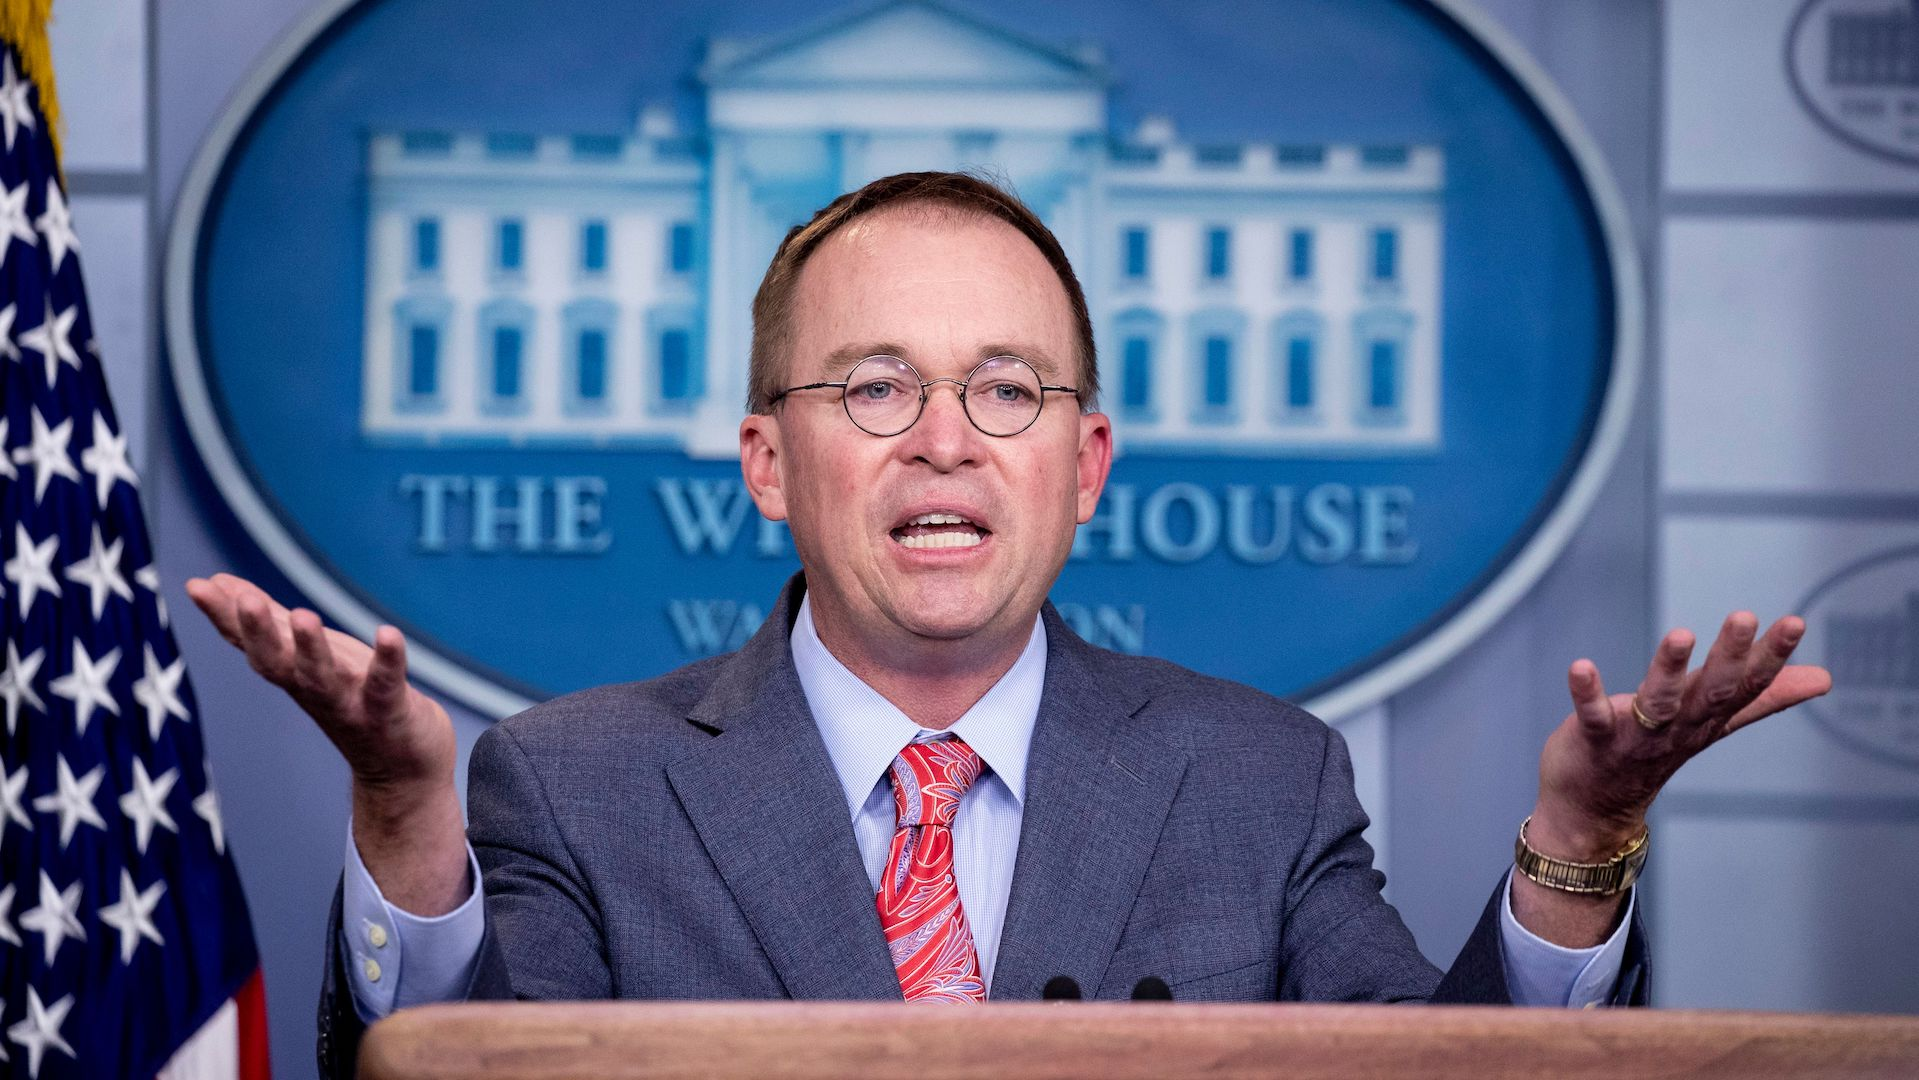 After saying Trump held back aid to pressure Ukraine, Mulvaney tries to walk back comments